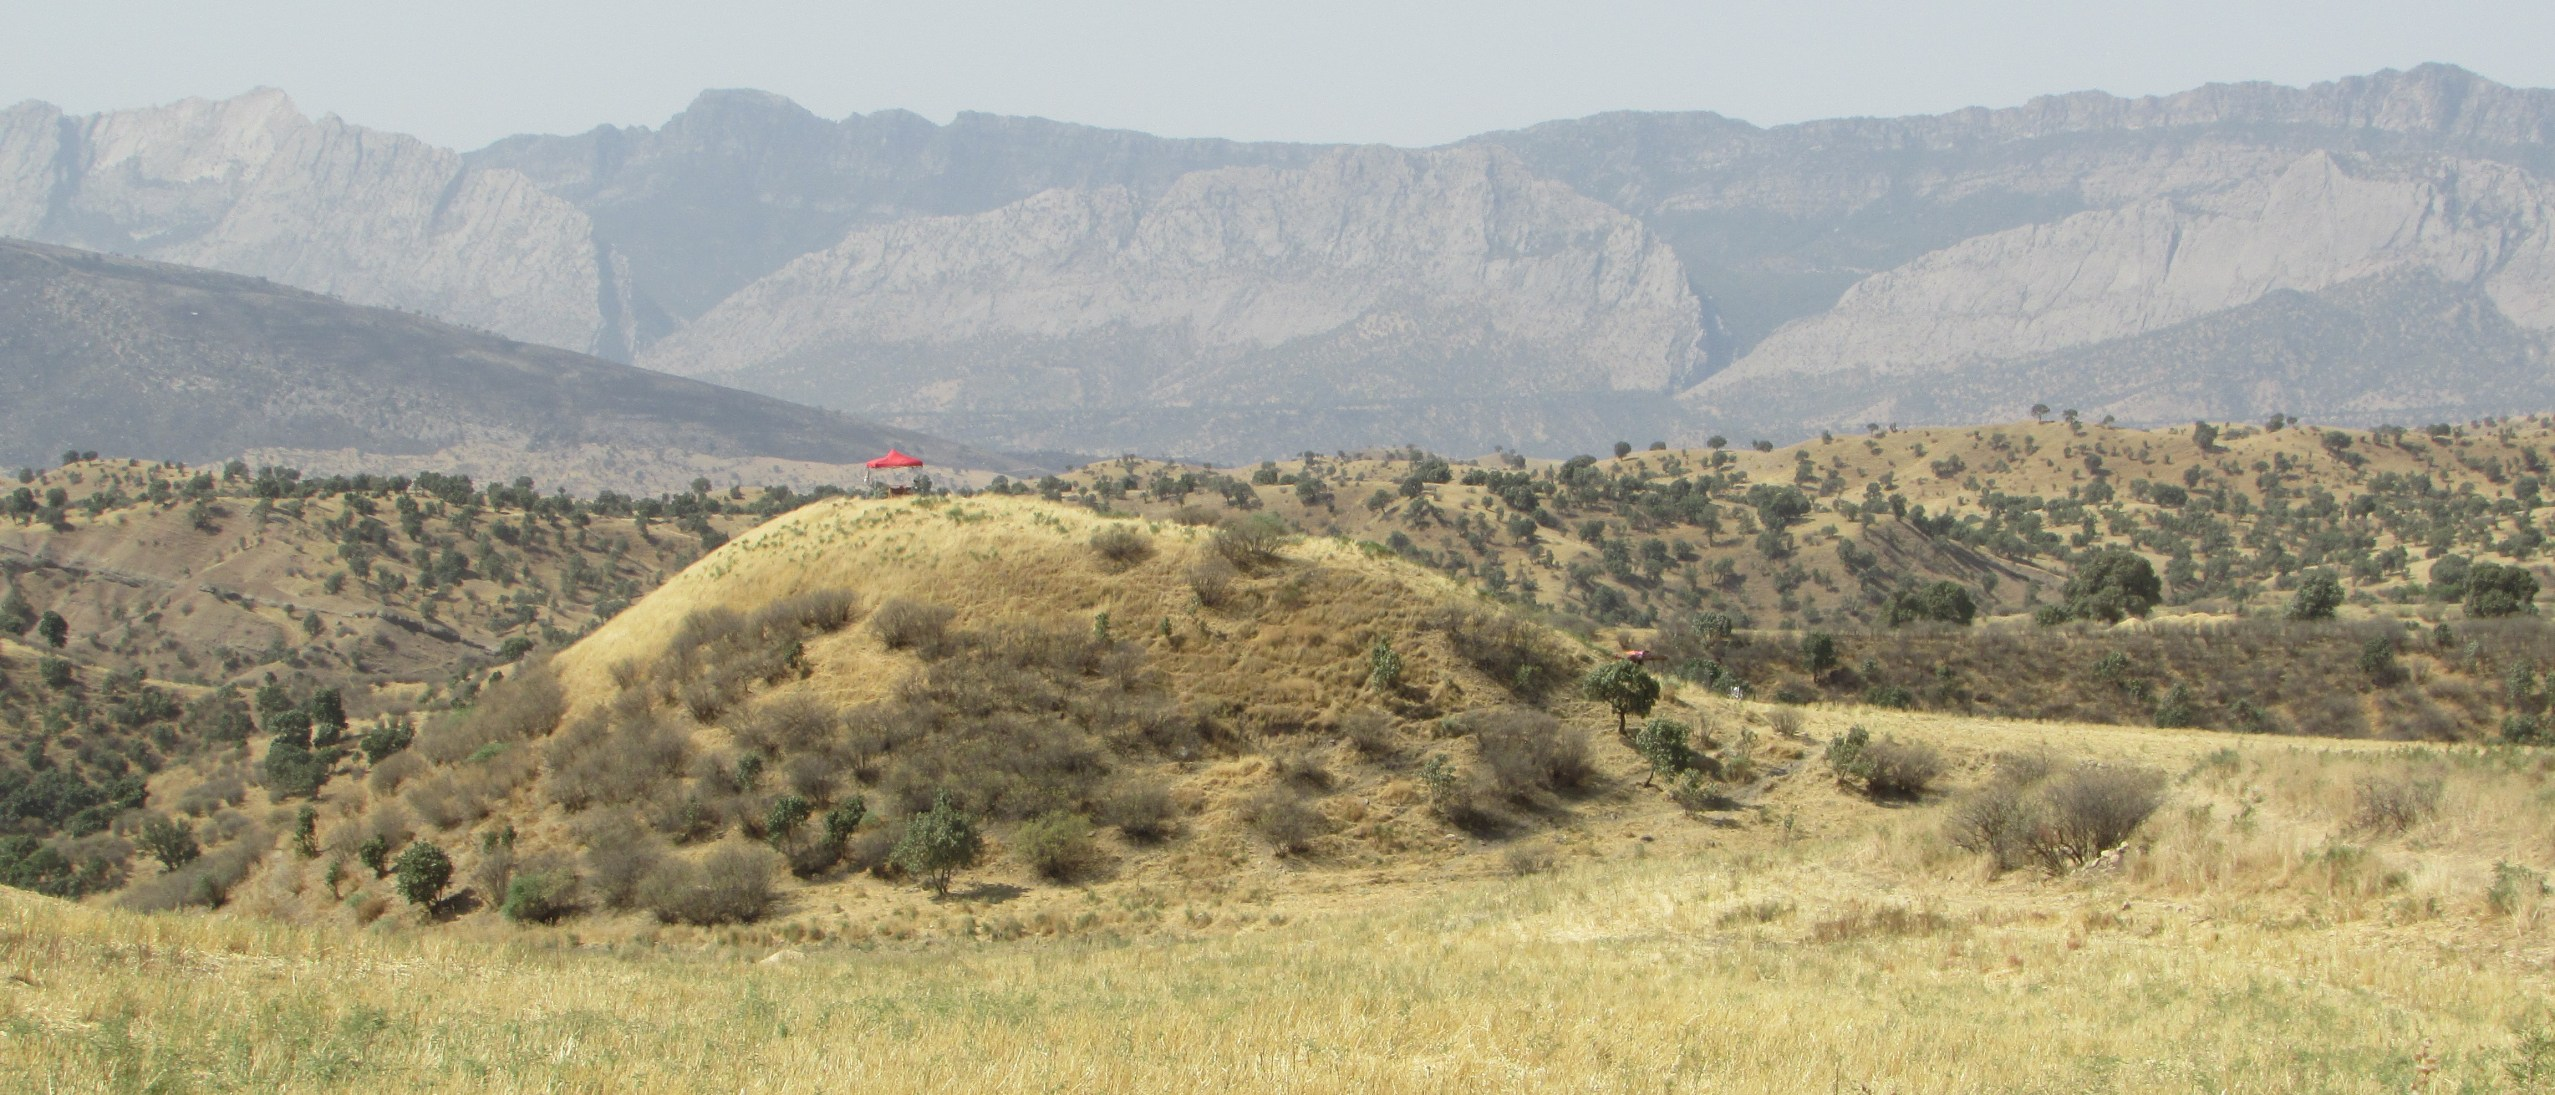 An open structure with a bright red roof stands atop a hill amid grassy planes, mountains rising high over the horizon.